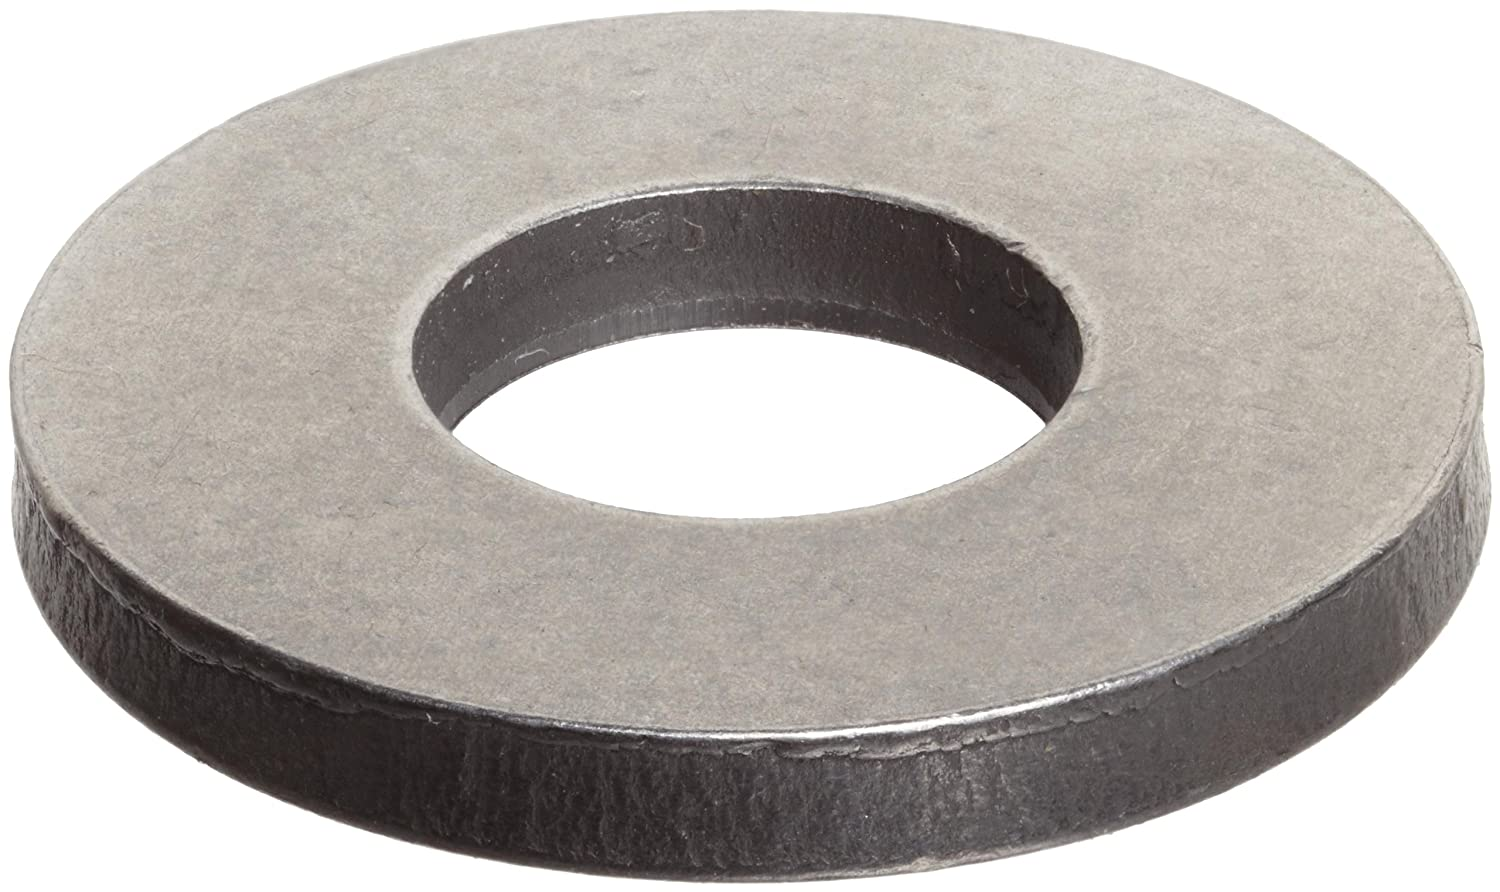 Full Hard Temper Steel Round Shim 5//8 ID 1 OD Matte Finish Pack of 10 0.007 Thickness